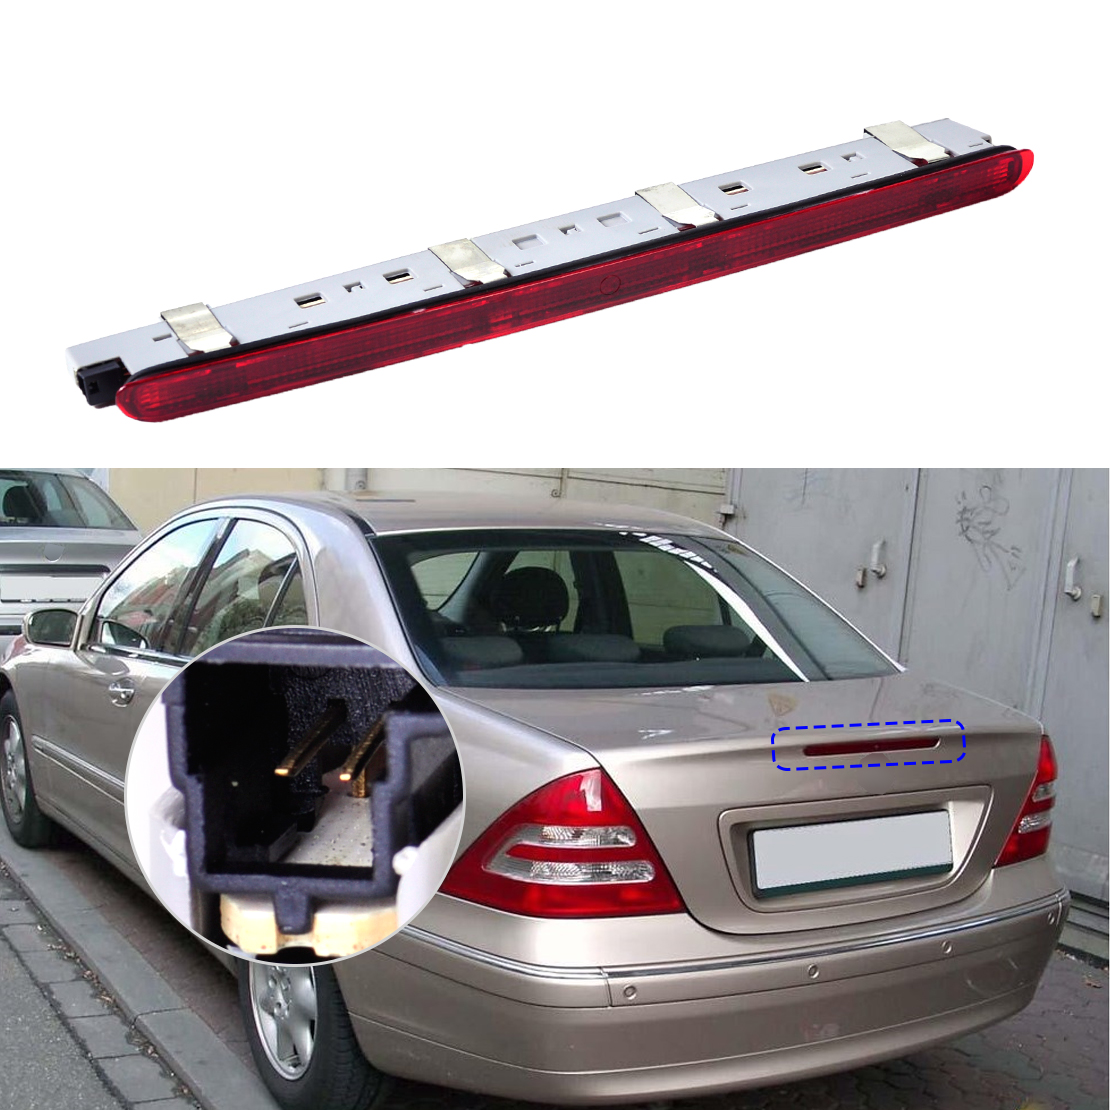 DWCX 2038201456 2038200156 1PC Rear Tail Stop Lamp Third Brake Light for Mercedes Benz W203 C230 C240 2000 - 2004 2004 2006 2007 car truck led tail rear bumper reflector light brake stop warining lamp for mercedes benz e class w203 sedan